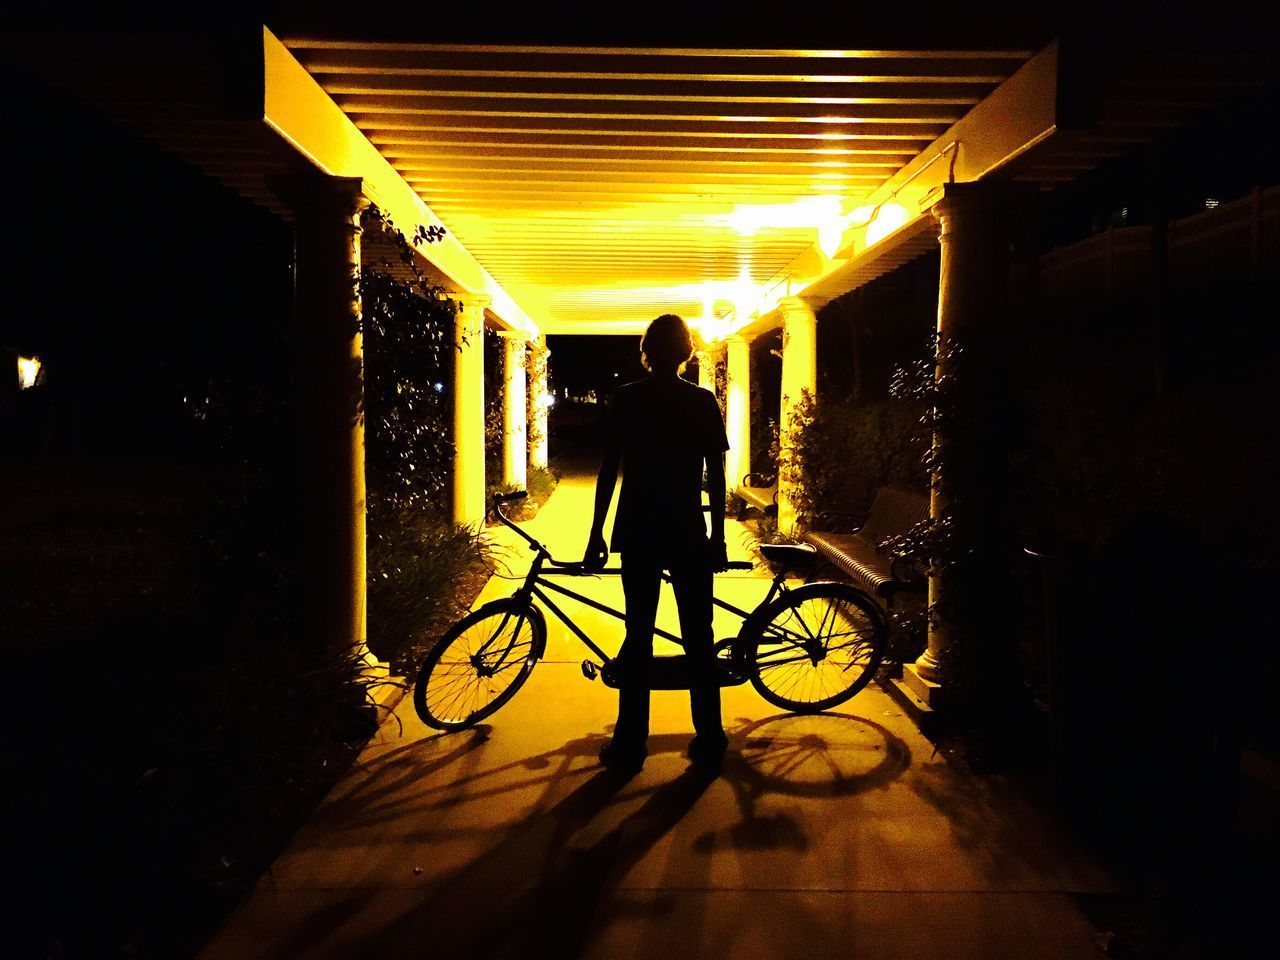 Bicycle Real People Land Vehicle Full Length Mode Of Transport Transportation Silhouette Leisure Activity Rear View Men Night Standing Cycling Lifestyles Illuminated One Person Architecture Outdoors Nature